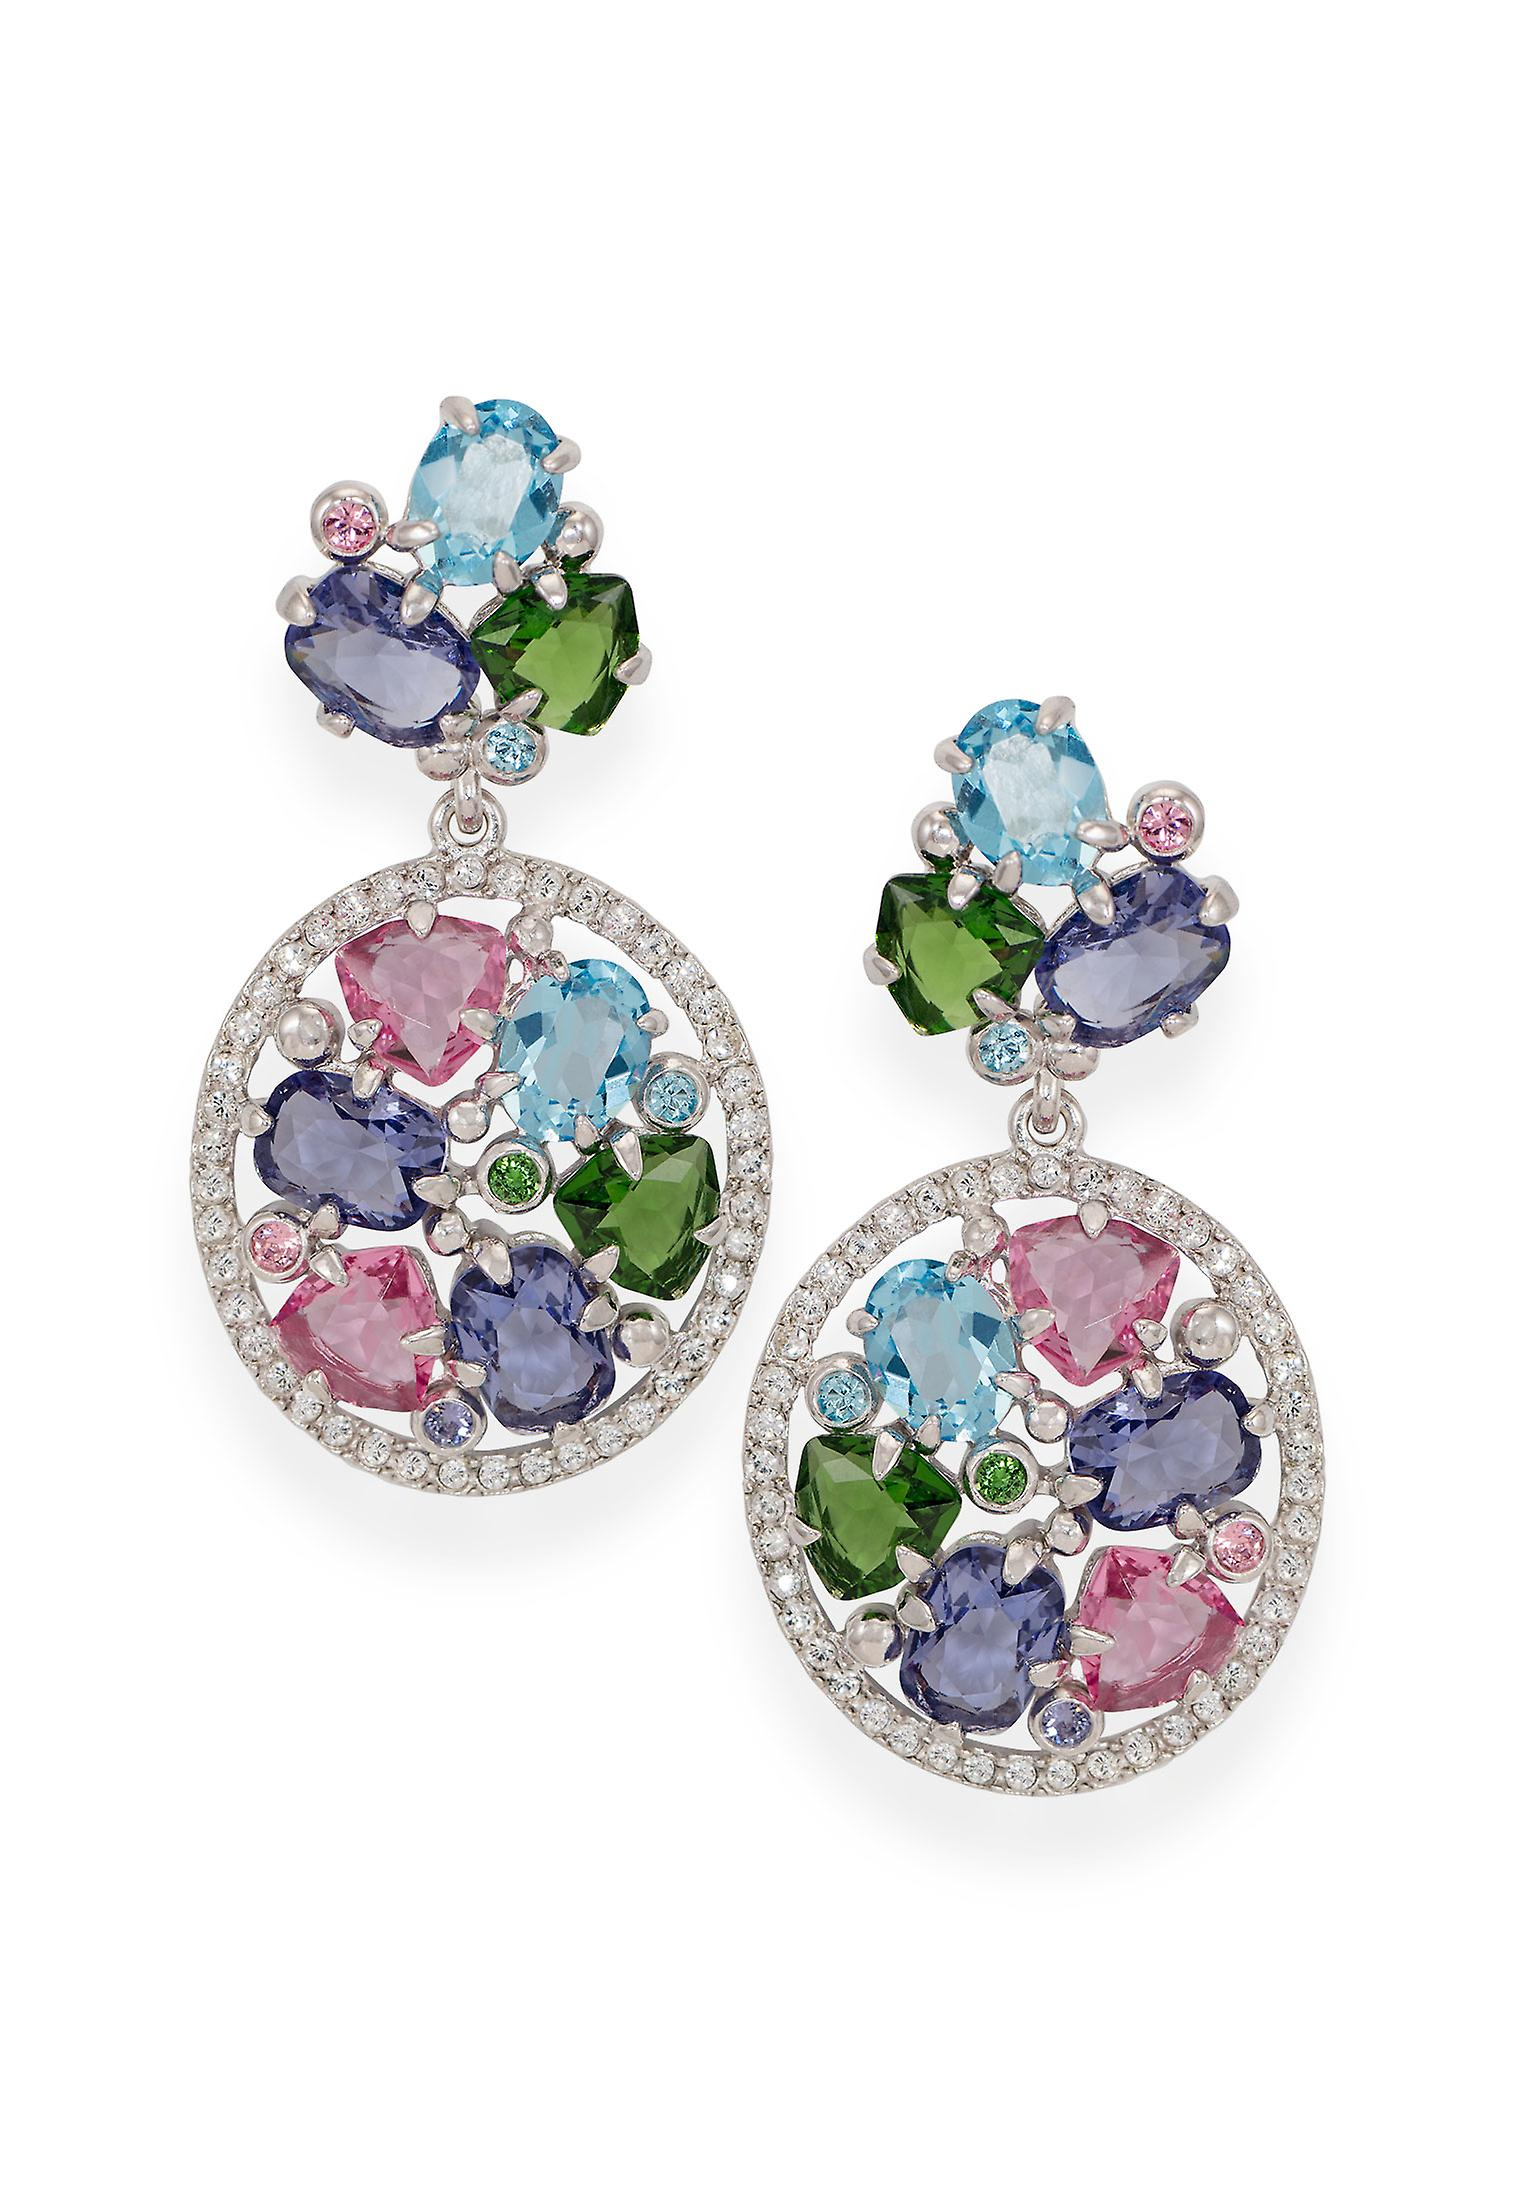 Multicolor earrings with crystals from Swarovski 4810